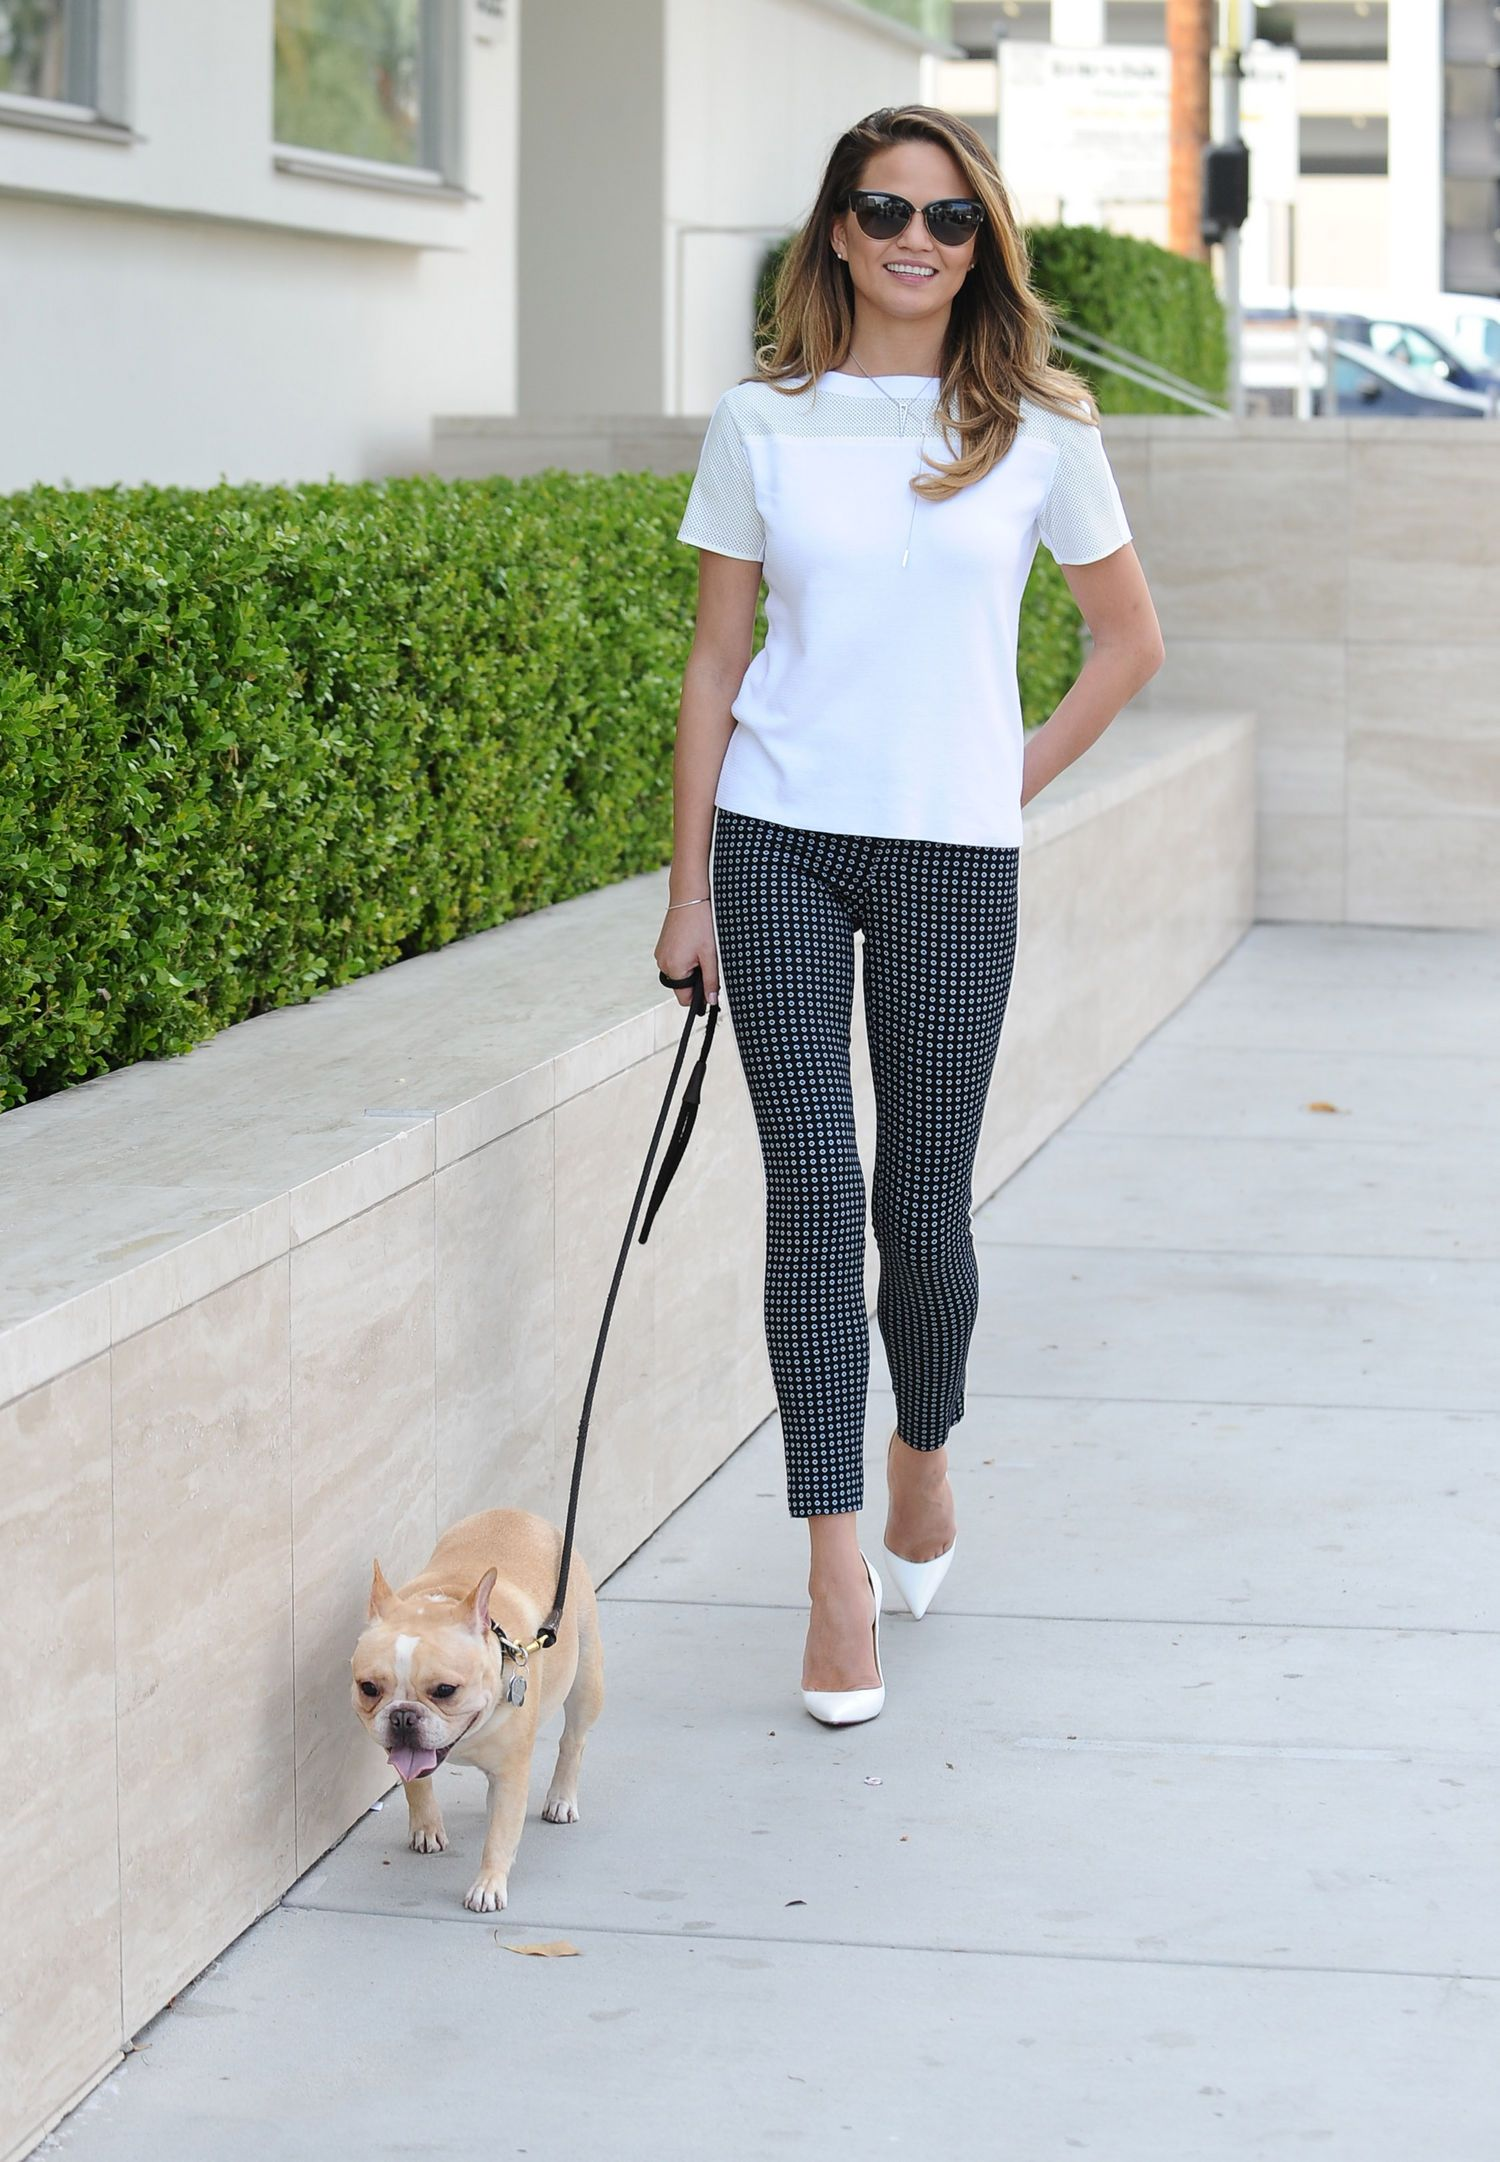 Forum on this topic: Chrissy Teigens Guide To Walking Your Dog , chrissy-teigens-guide-to-walking-your-dog/